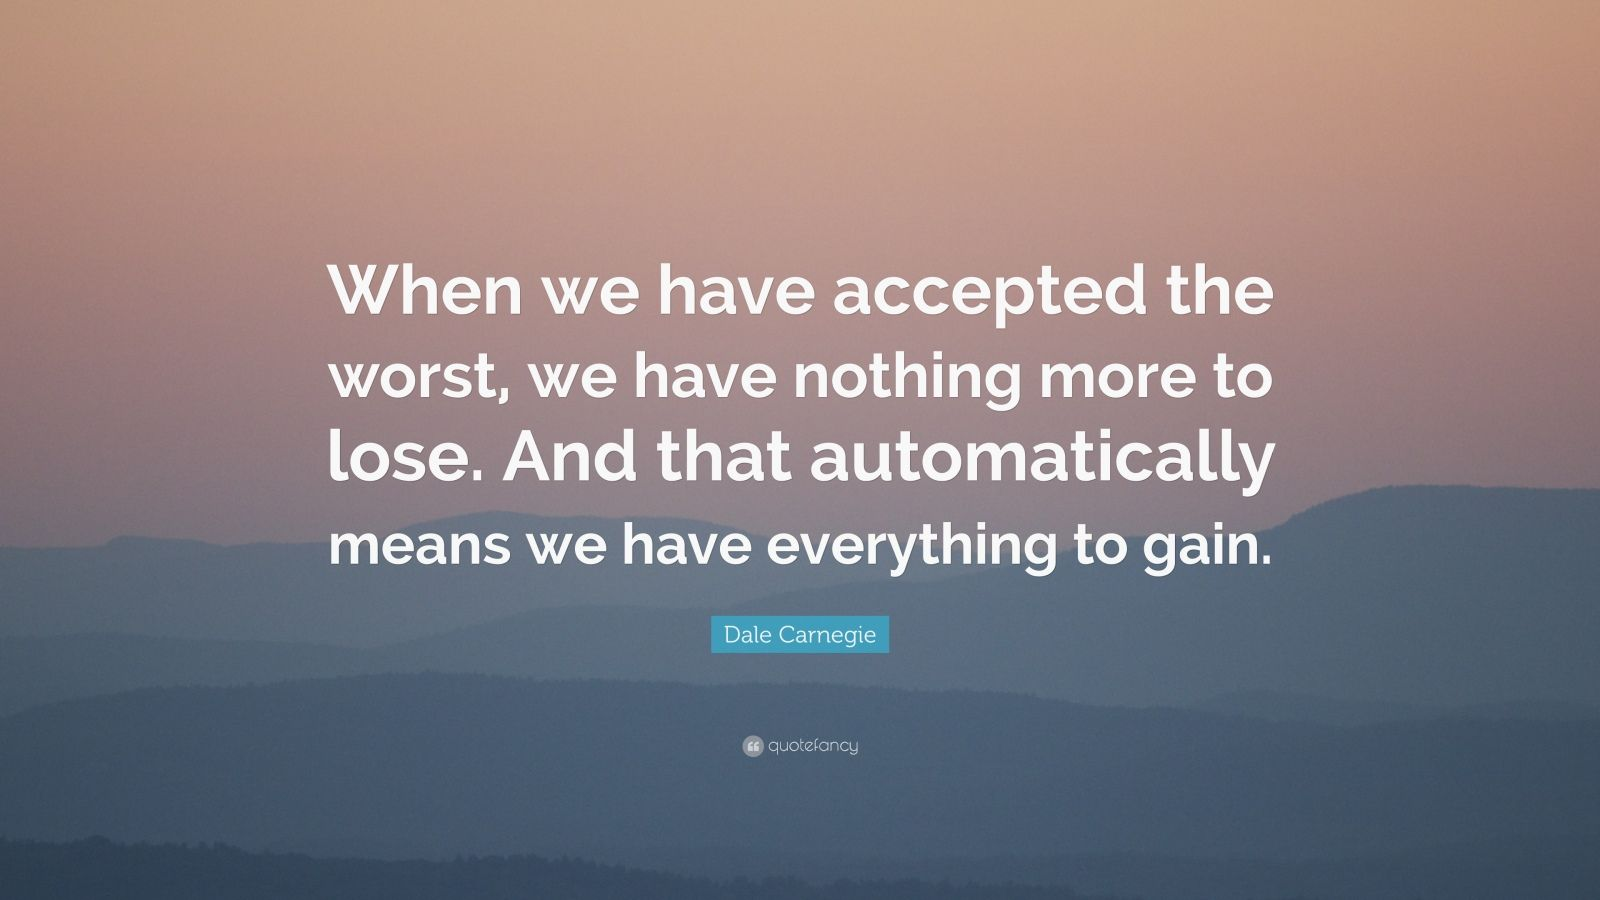 """Dale Carnegie Quote: """"When we have accepted the worst, we have nothing more to lose. And that automatically means we have everything to gain."""""""